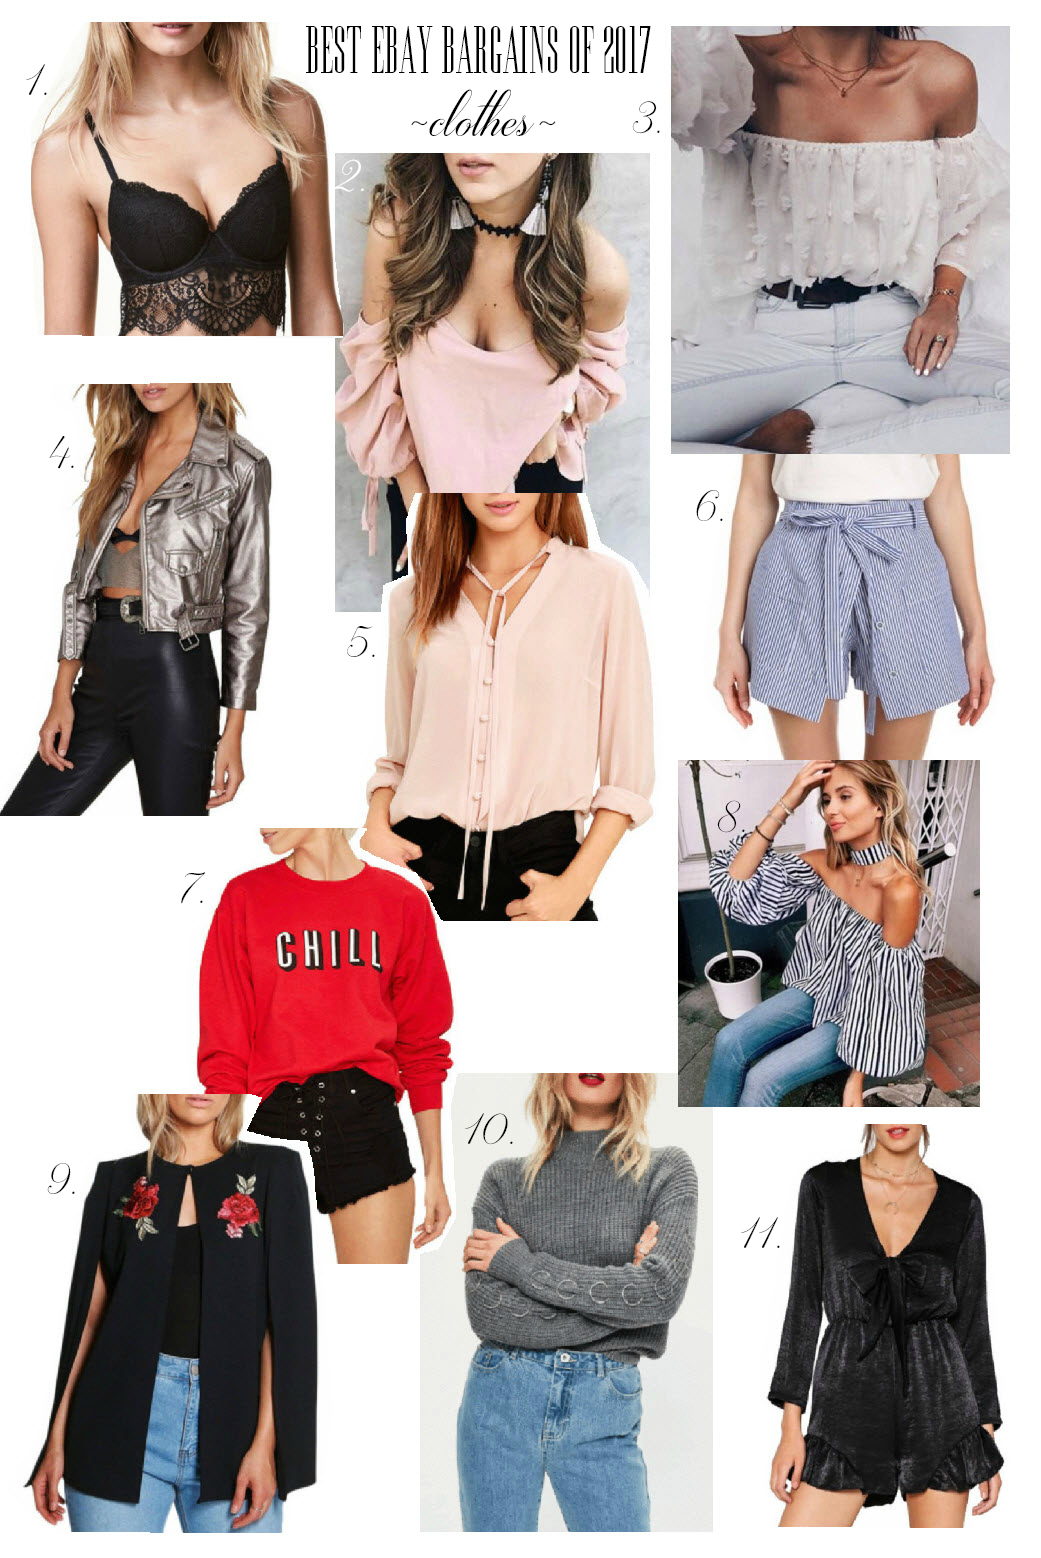 Favorite clothes on eBay of 2017